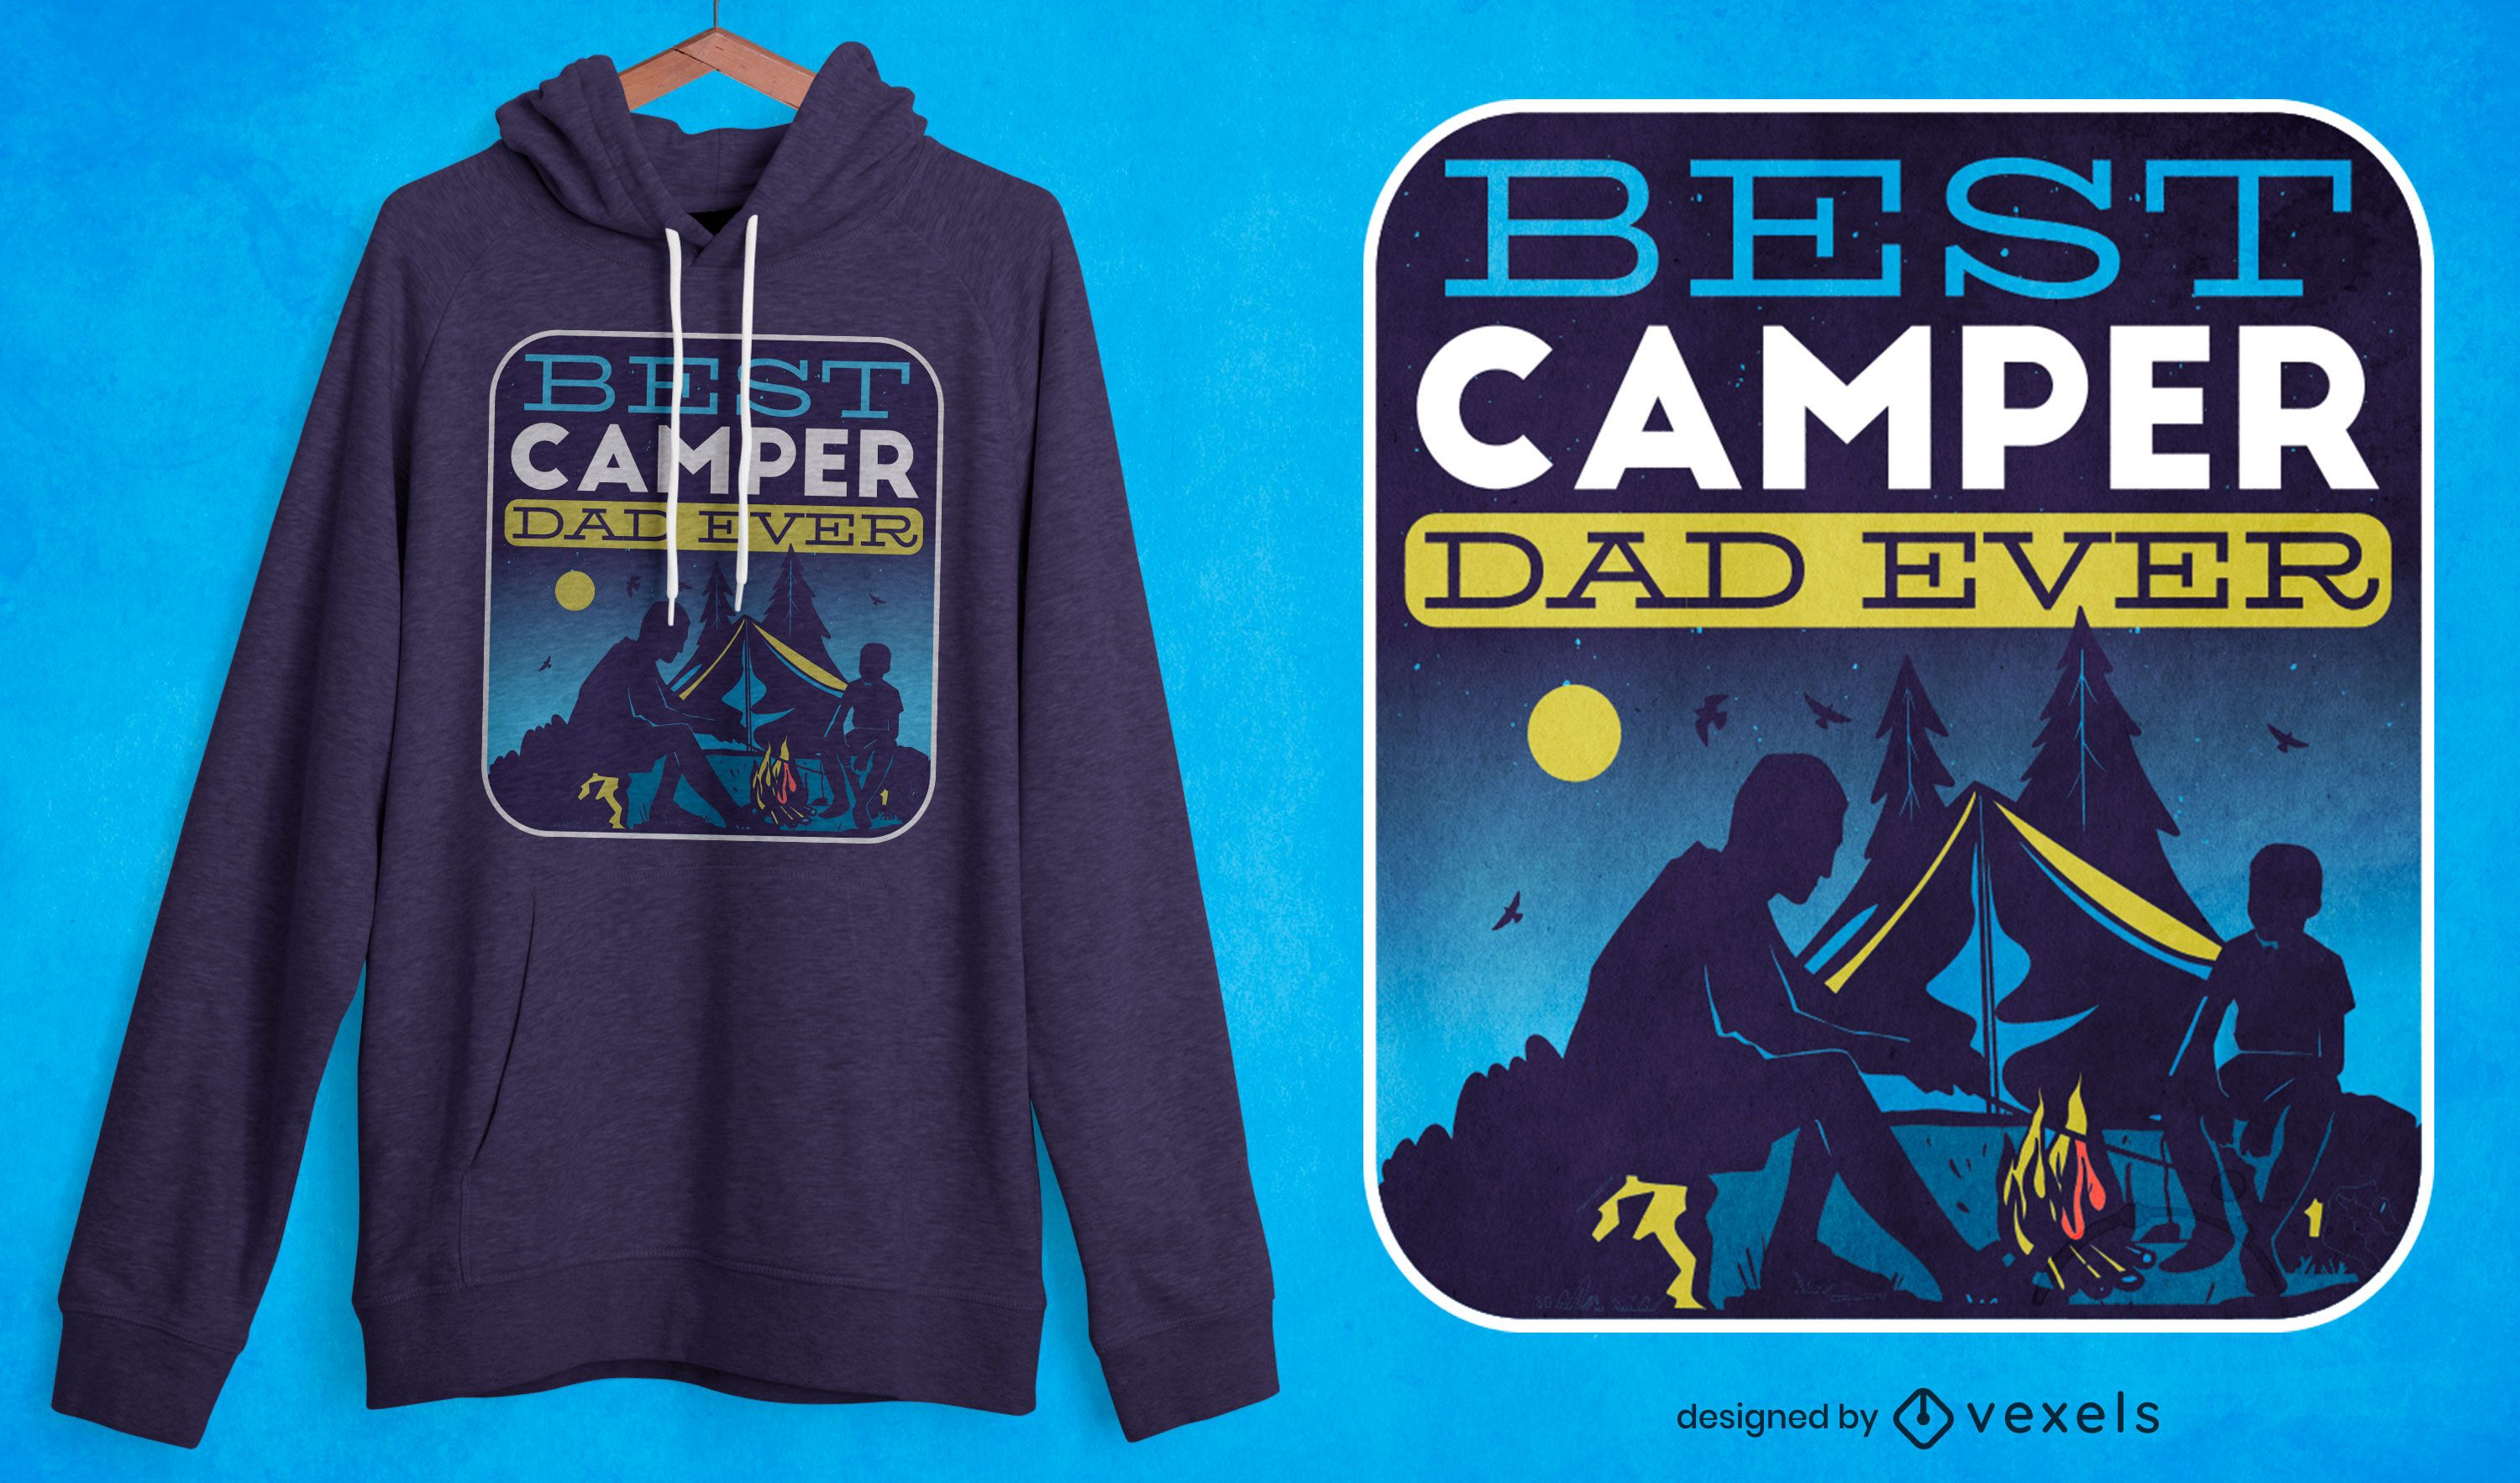 Camping father and son t-shirt design